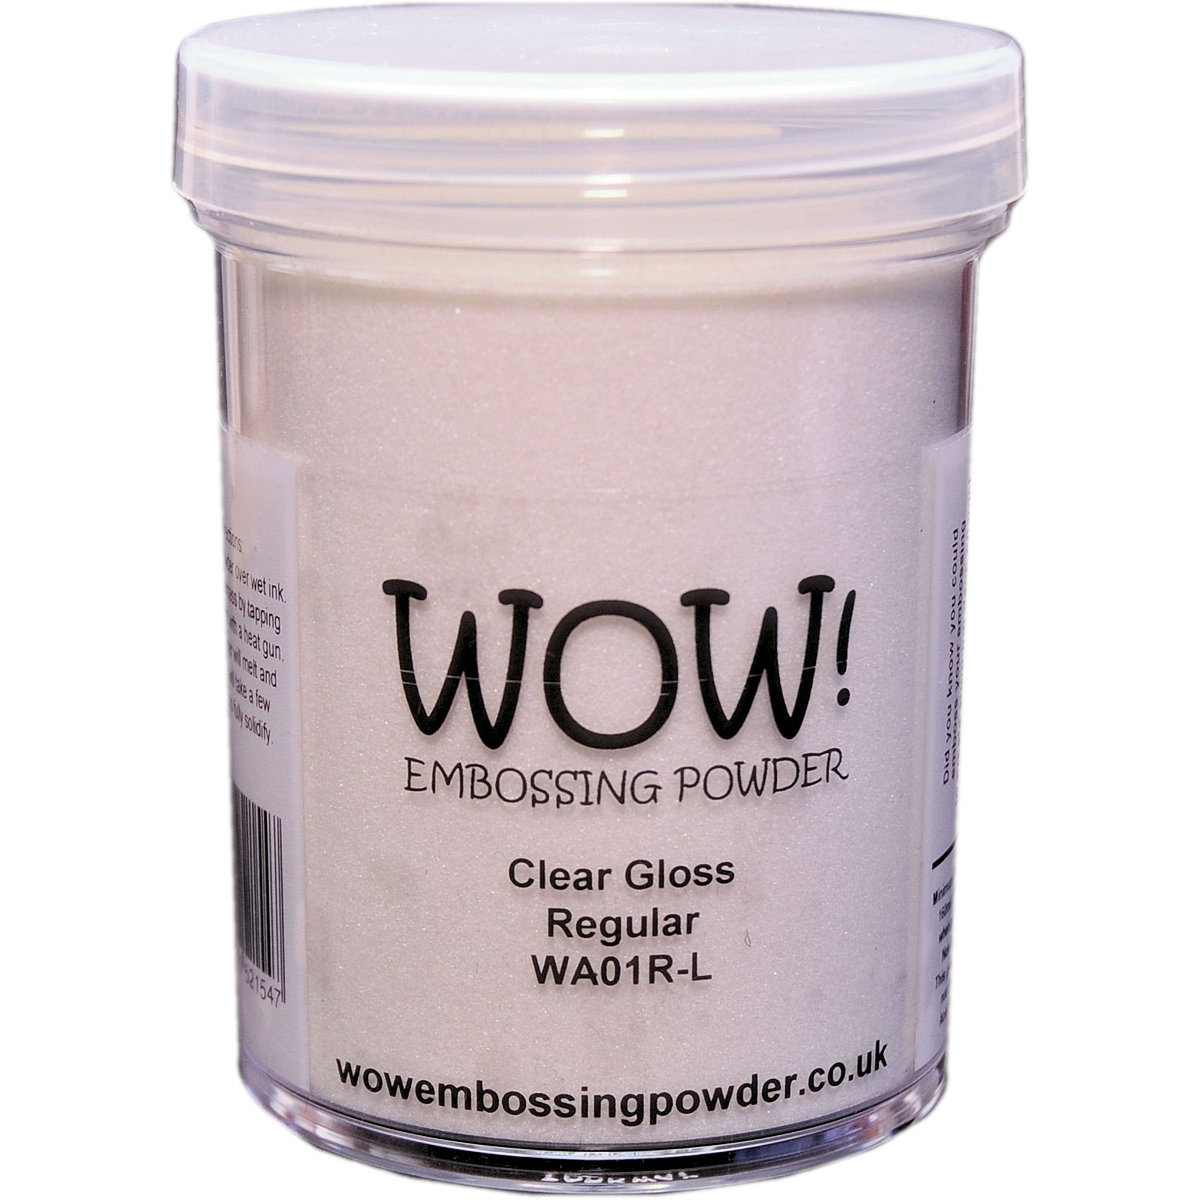 WOW! CLEAR GLOSS- Superfine Embossing Powder- Large jar